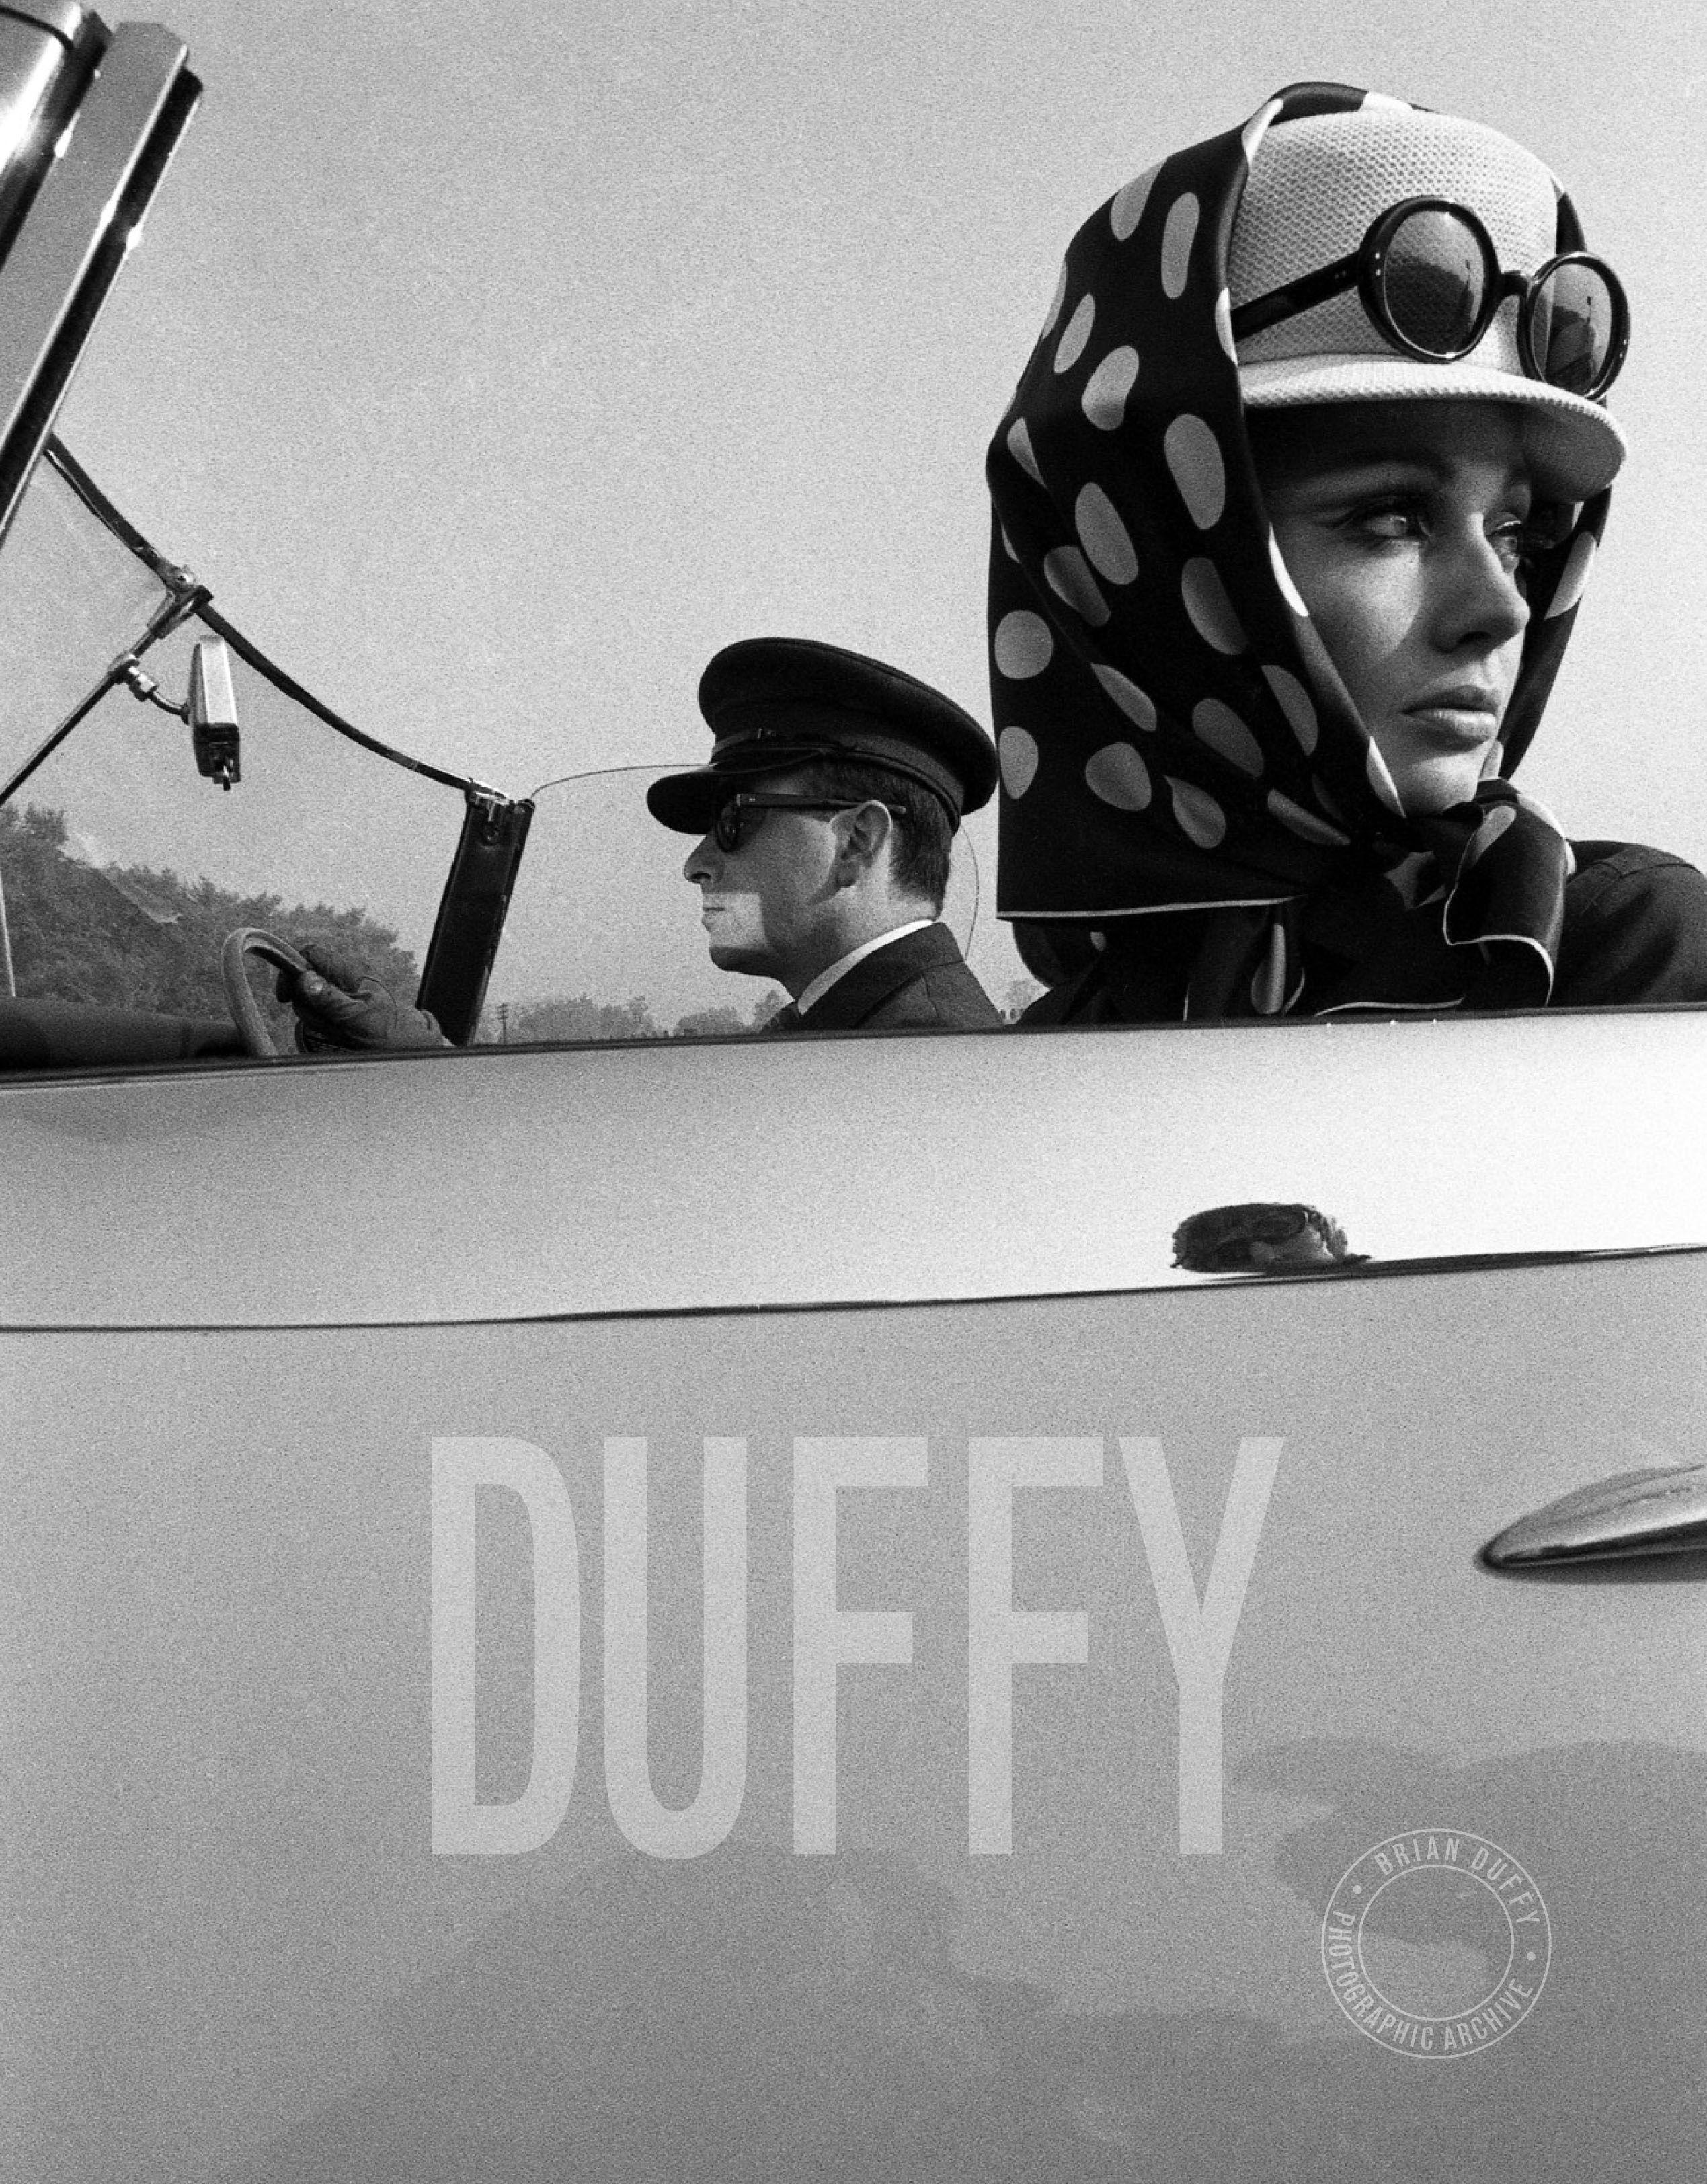 Duffy: The Work of Photographer by Brian Duffy  (cover of the book by this name) via  thestyleking.com  Duffy did the iconic David Bowie picture from the album Aladdin Sane